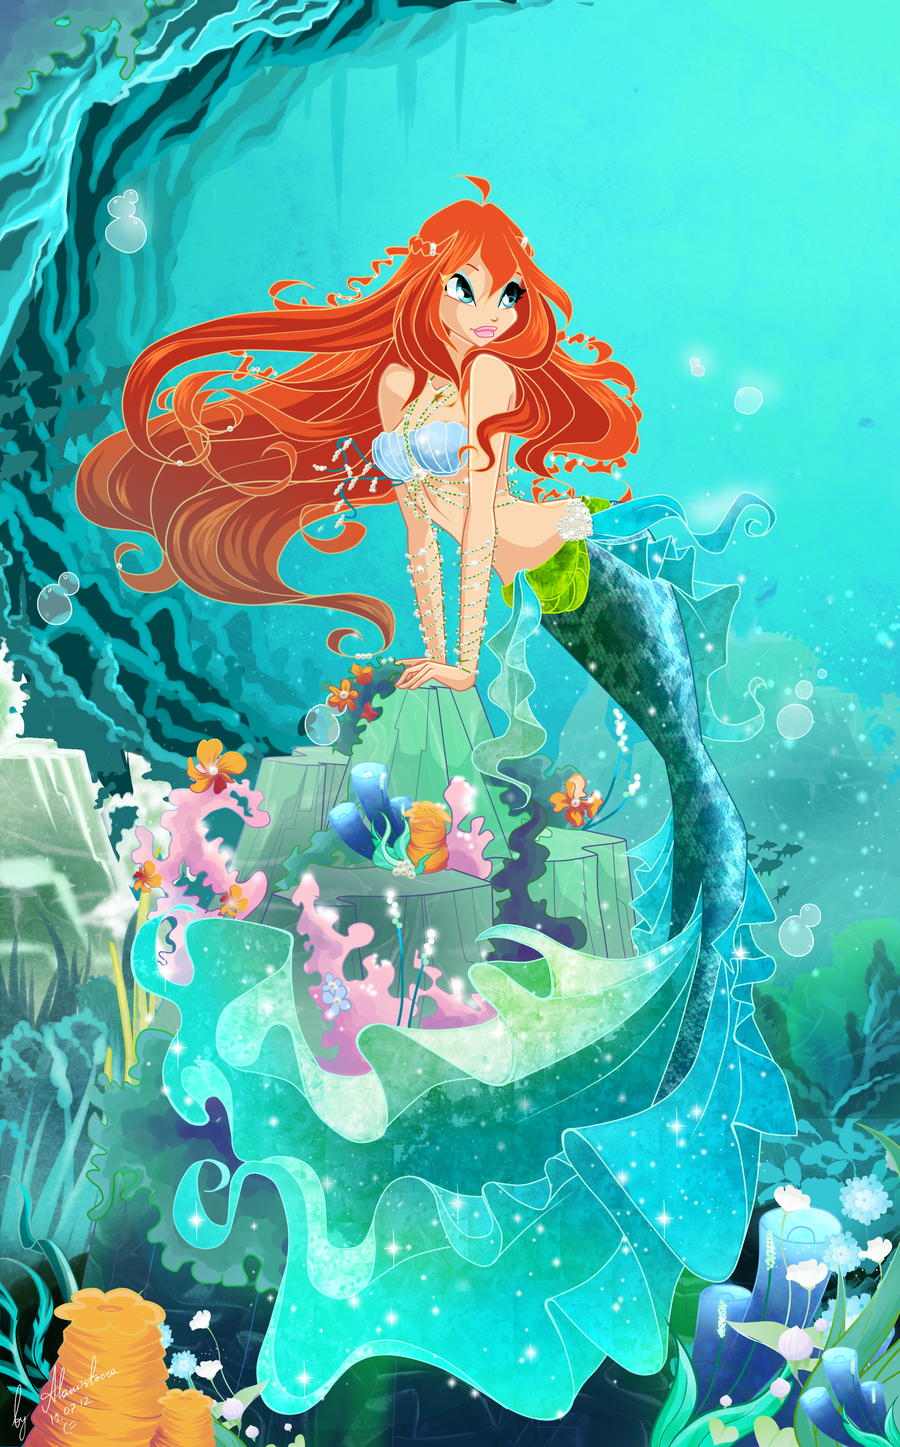 Bloom mermaid anges et f e anges et f es - Bloom dessin anime ...